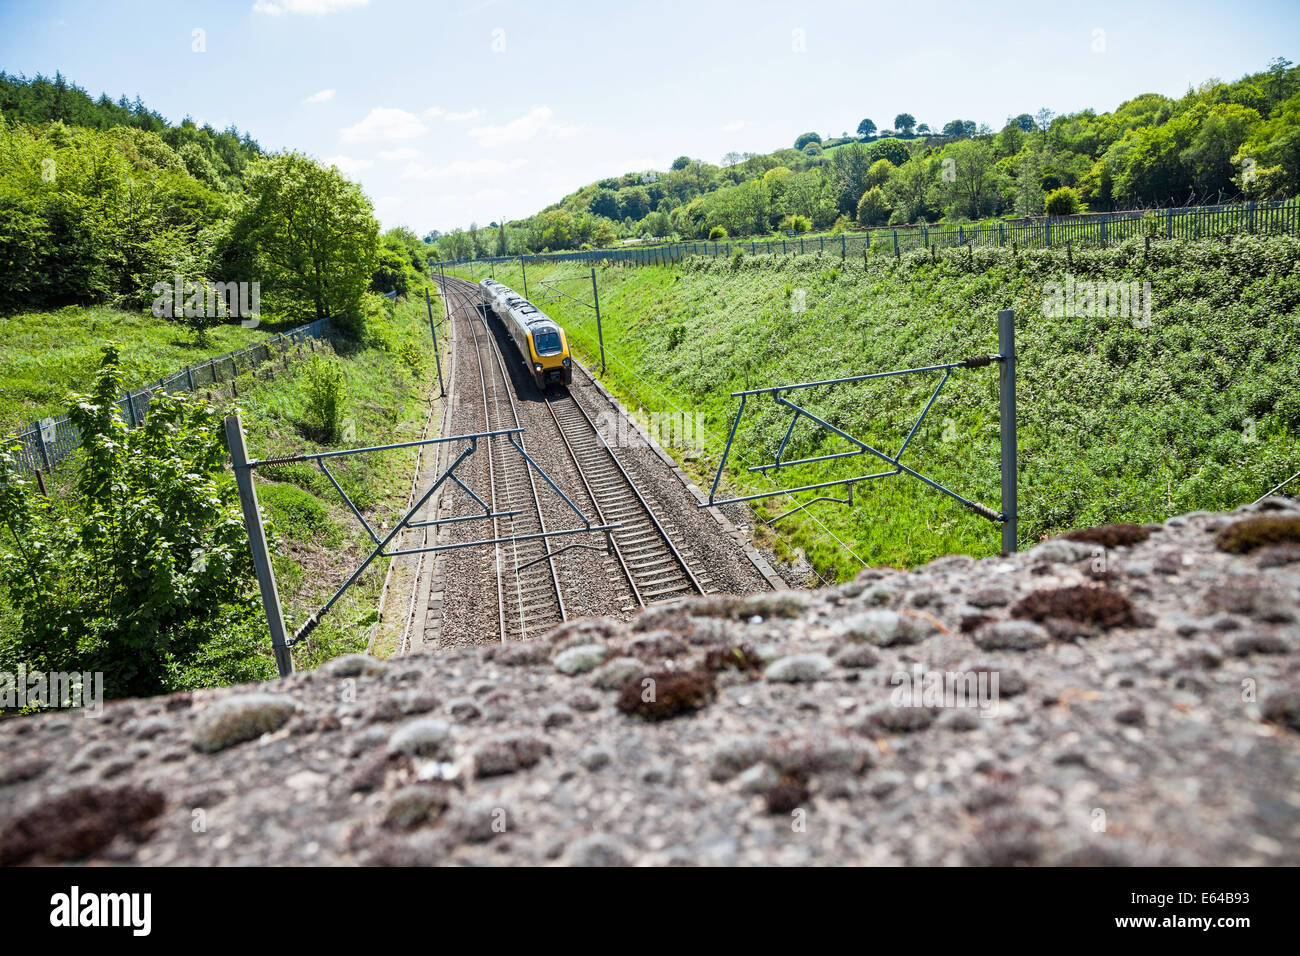 A Virgin intercity train on the main Londow to glasgow line at Bathpool Kidsgrove Stoke on trent Staffordshire England - Stock Image